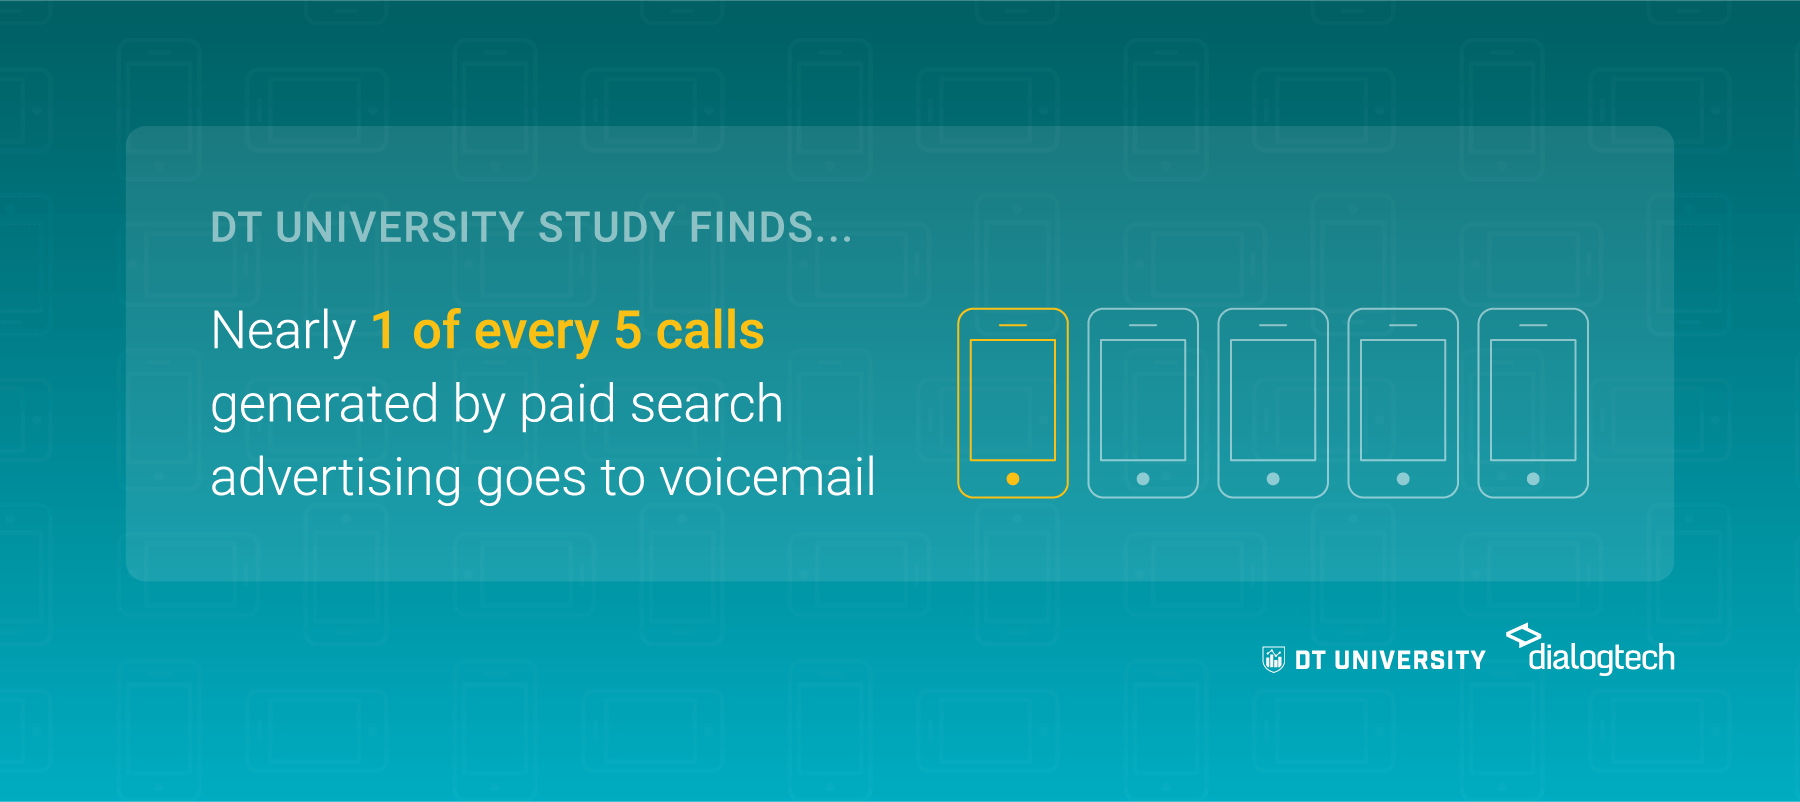 DT University- DialogTech Study finds nearly 1 in 5 calls from paid search goes to voicemail